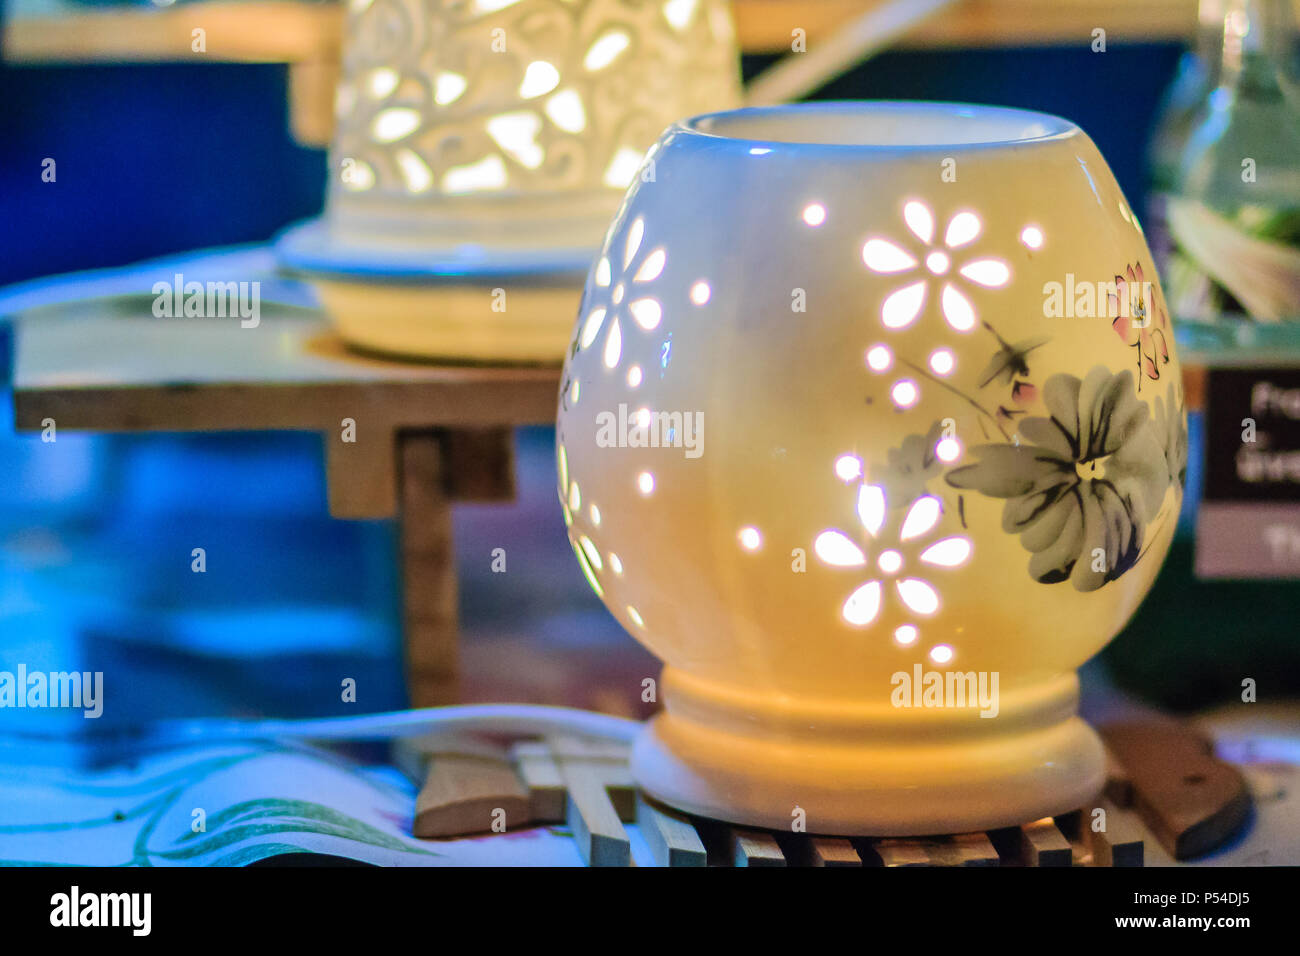 Beautiful Handmade Ceramic Lamp In Flower Patterns Pottery Lamp With Flower Stock Photo Alamy